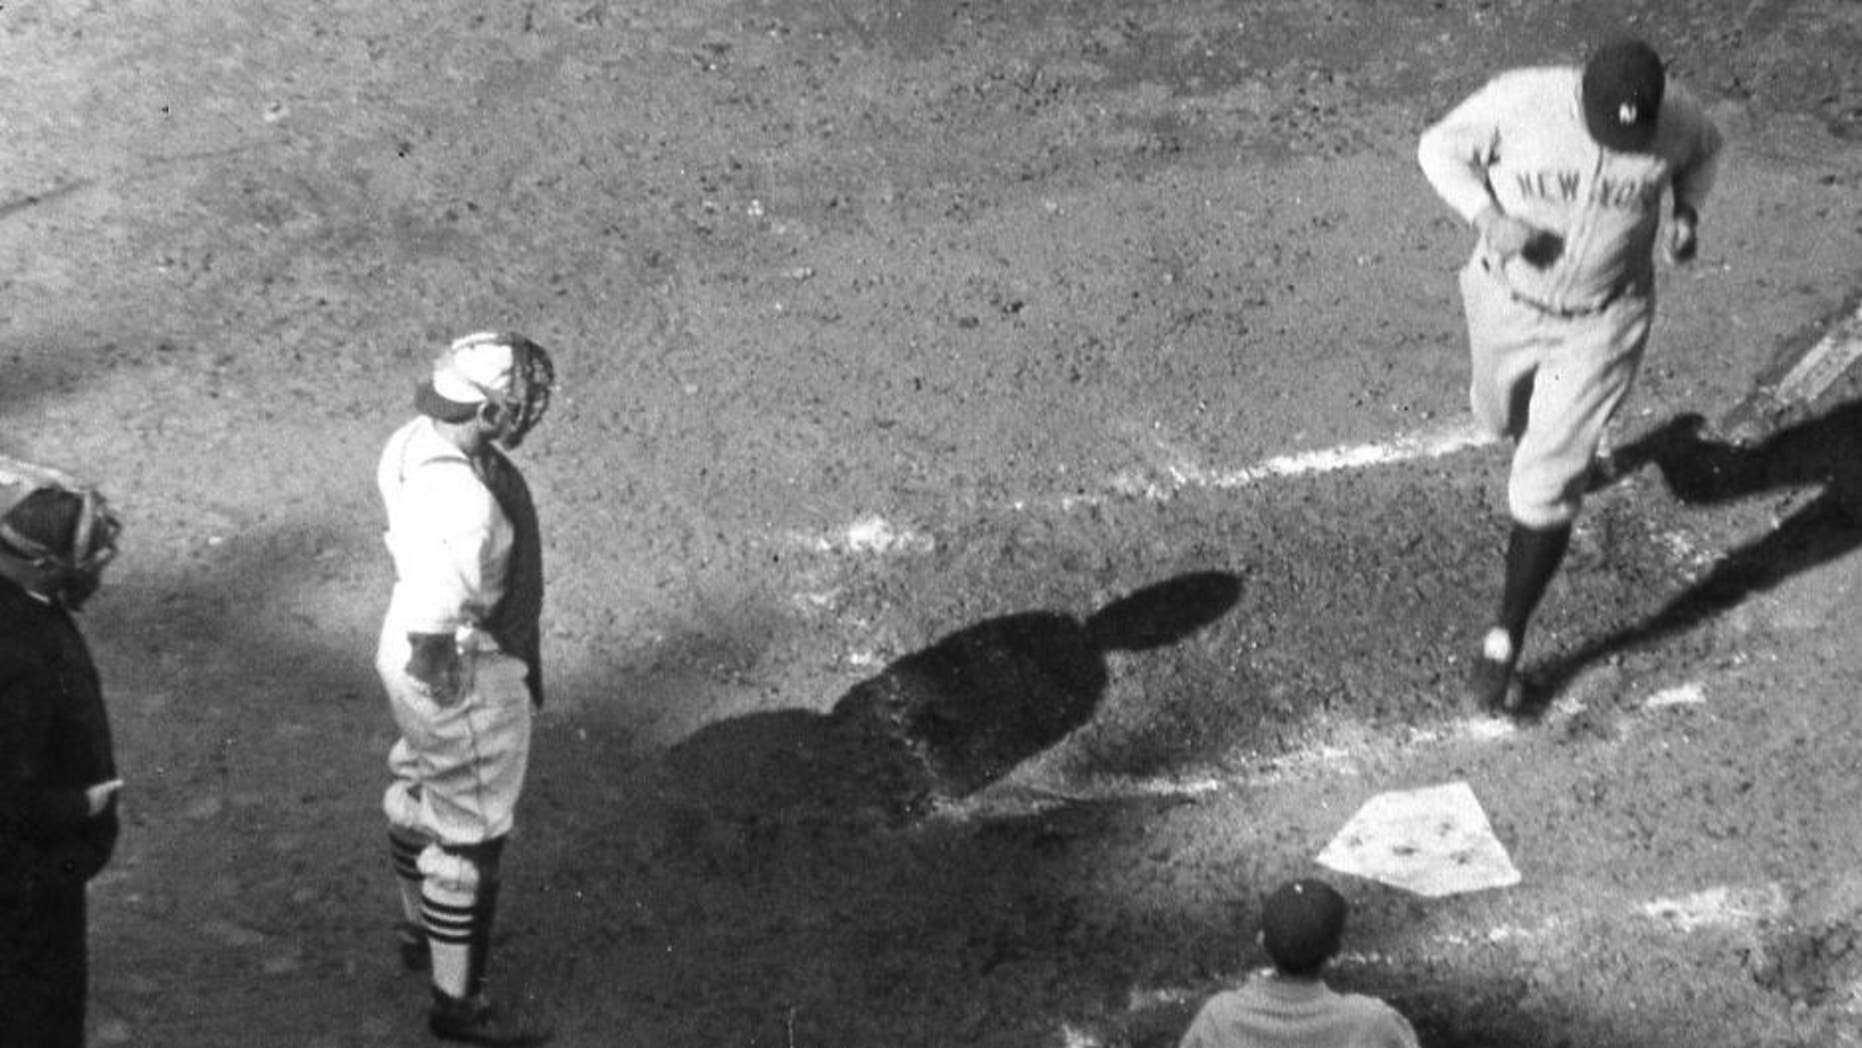 NEW YORK - October 6, 1926. Babe Ruth is crossing the plate after hitting his third home run on October 11, 1926 in the fourth game of the World Series in St. Louis. Bob O'Farrell is the Cardinals catcher. (Photo by Mark Rucker/Transcendental Graphics, Getty Images) *** Local Caption *** Babe Ruth;Bob O'Farrell